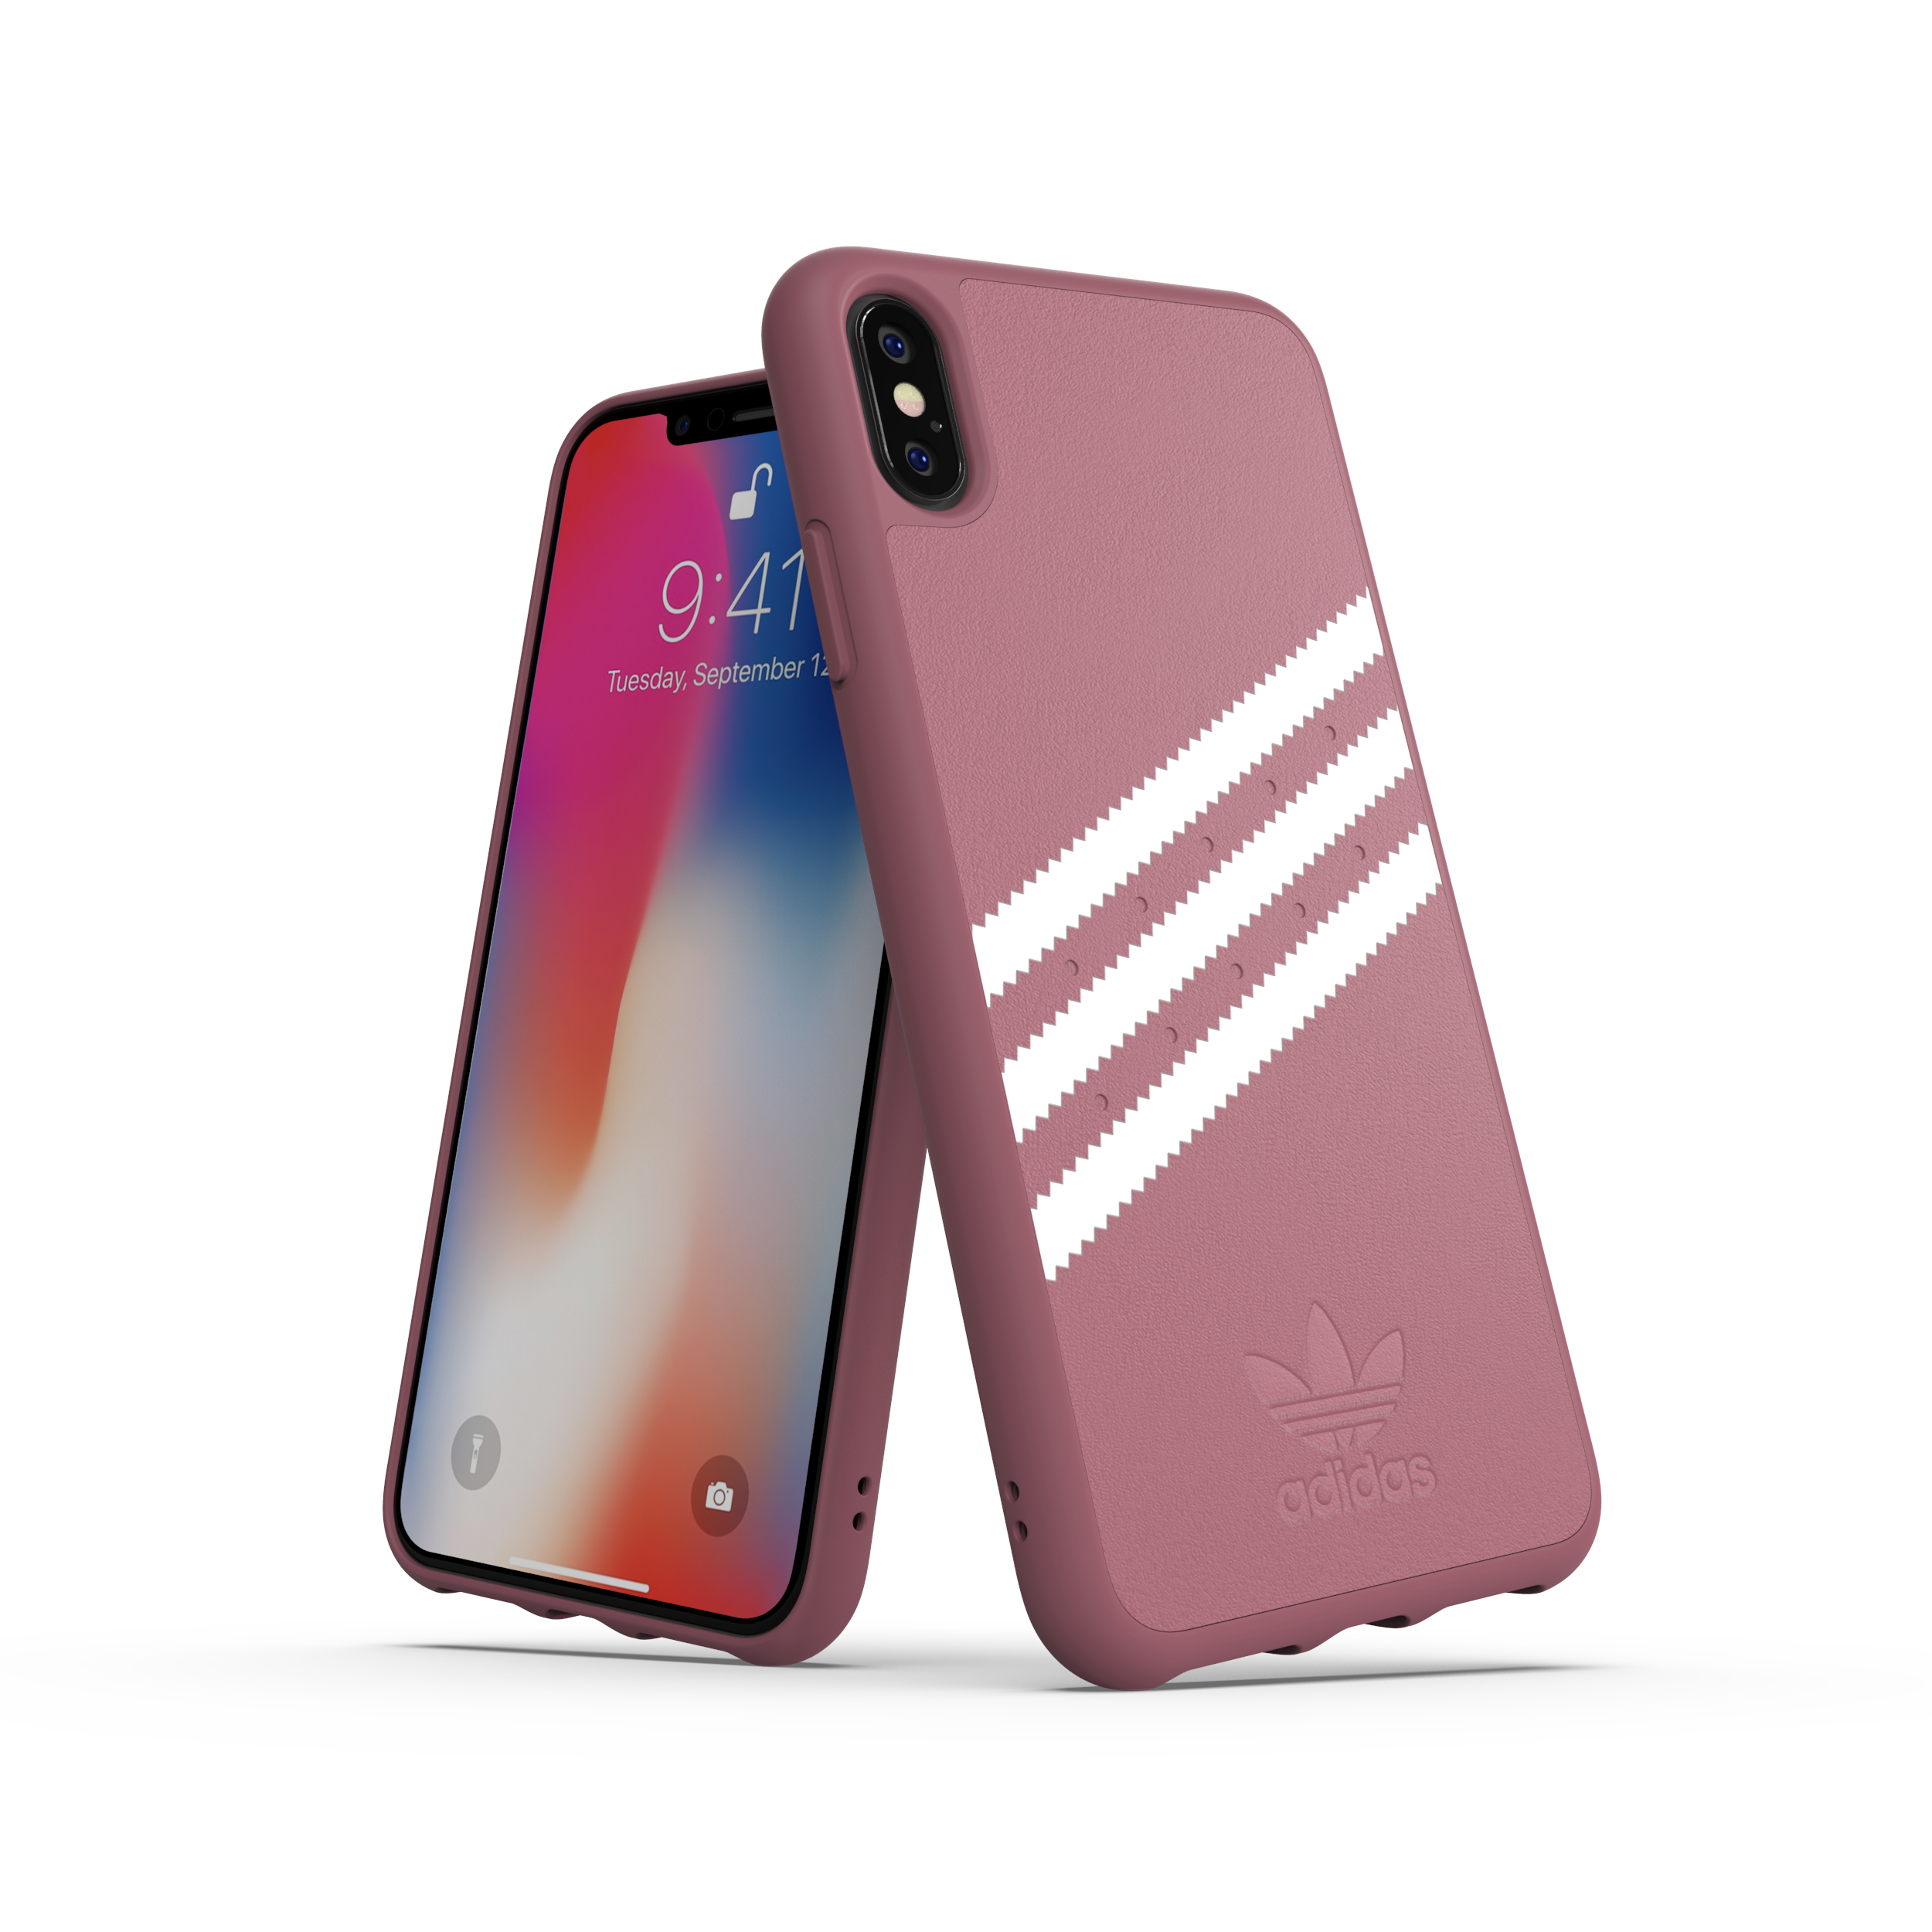 Ốp Lưng iPhone XS Max Adidas 3-STRIPES SNAP